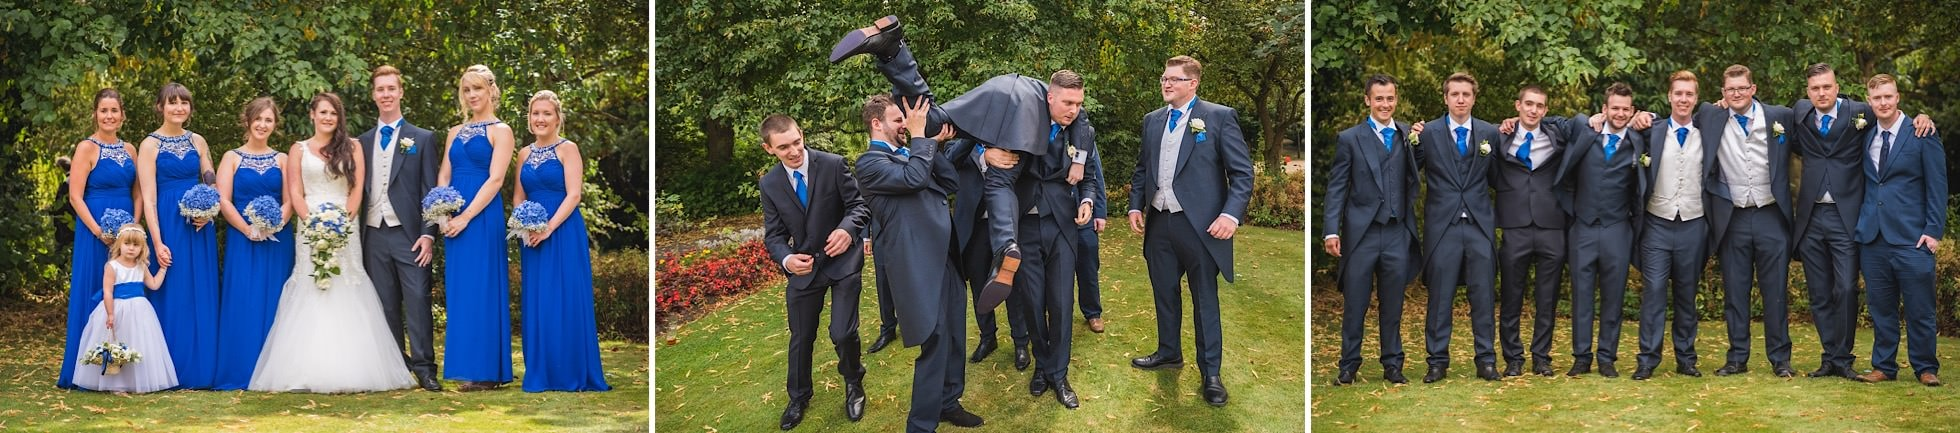 Groomsmen and bridesmaid shots